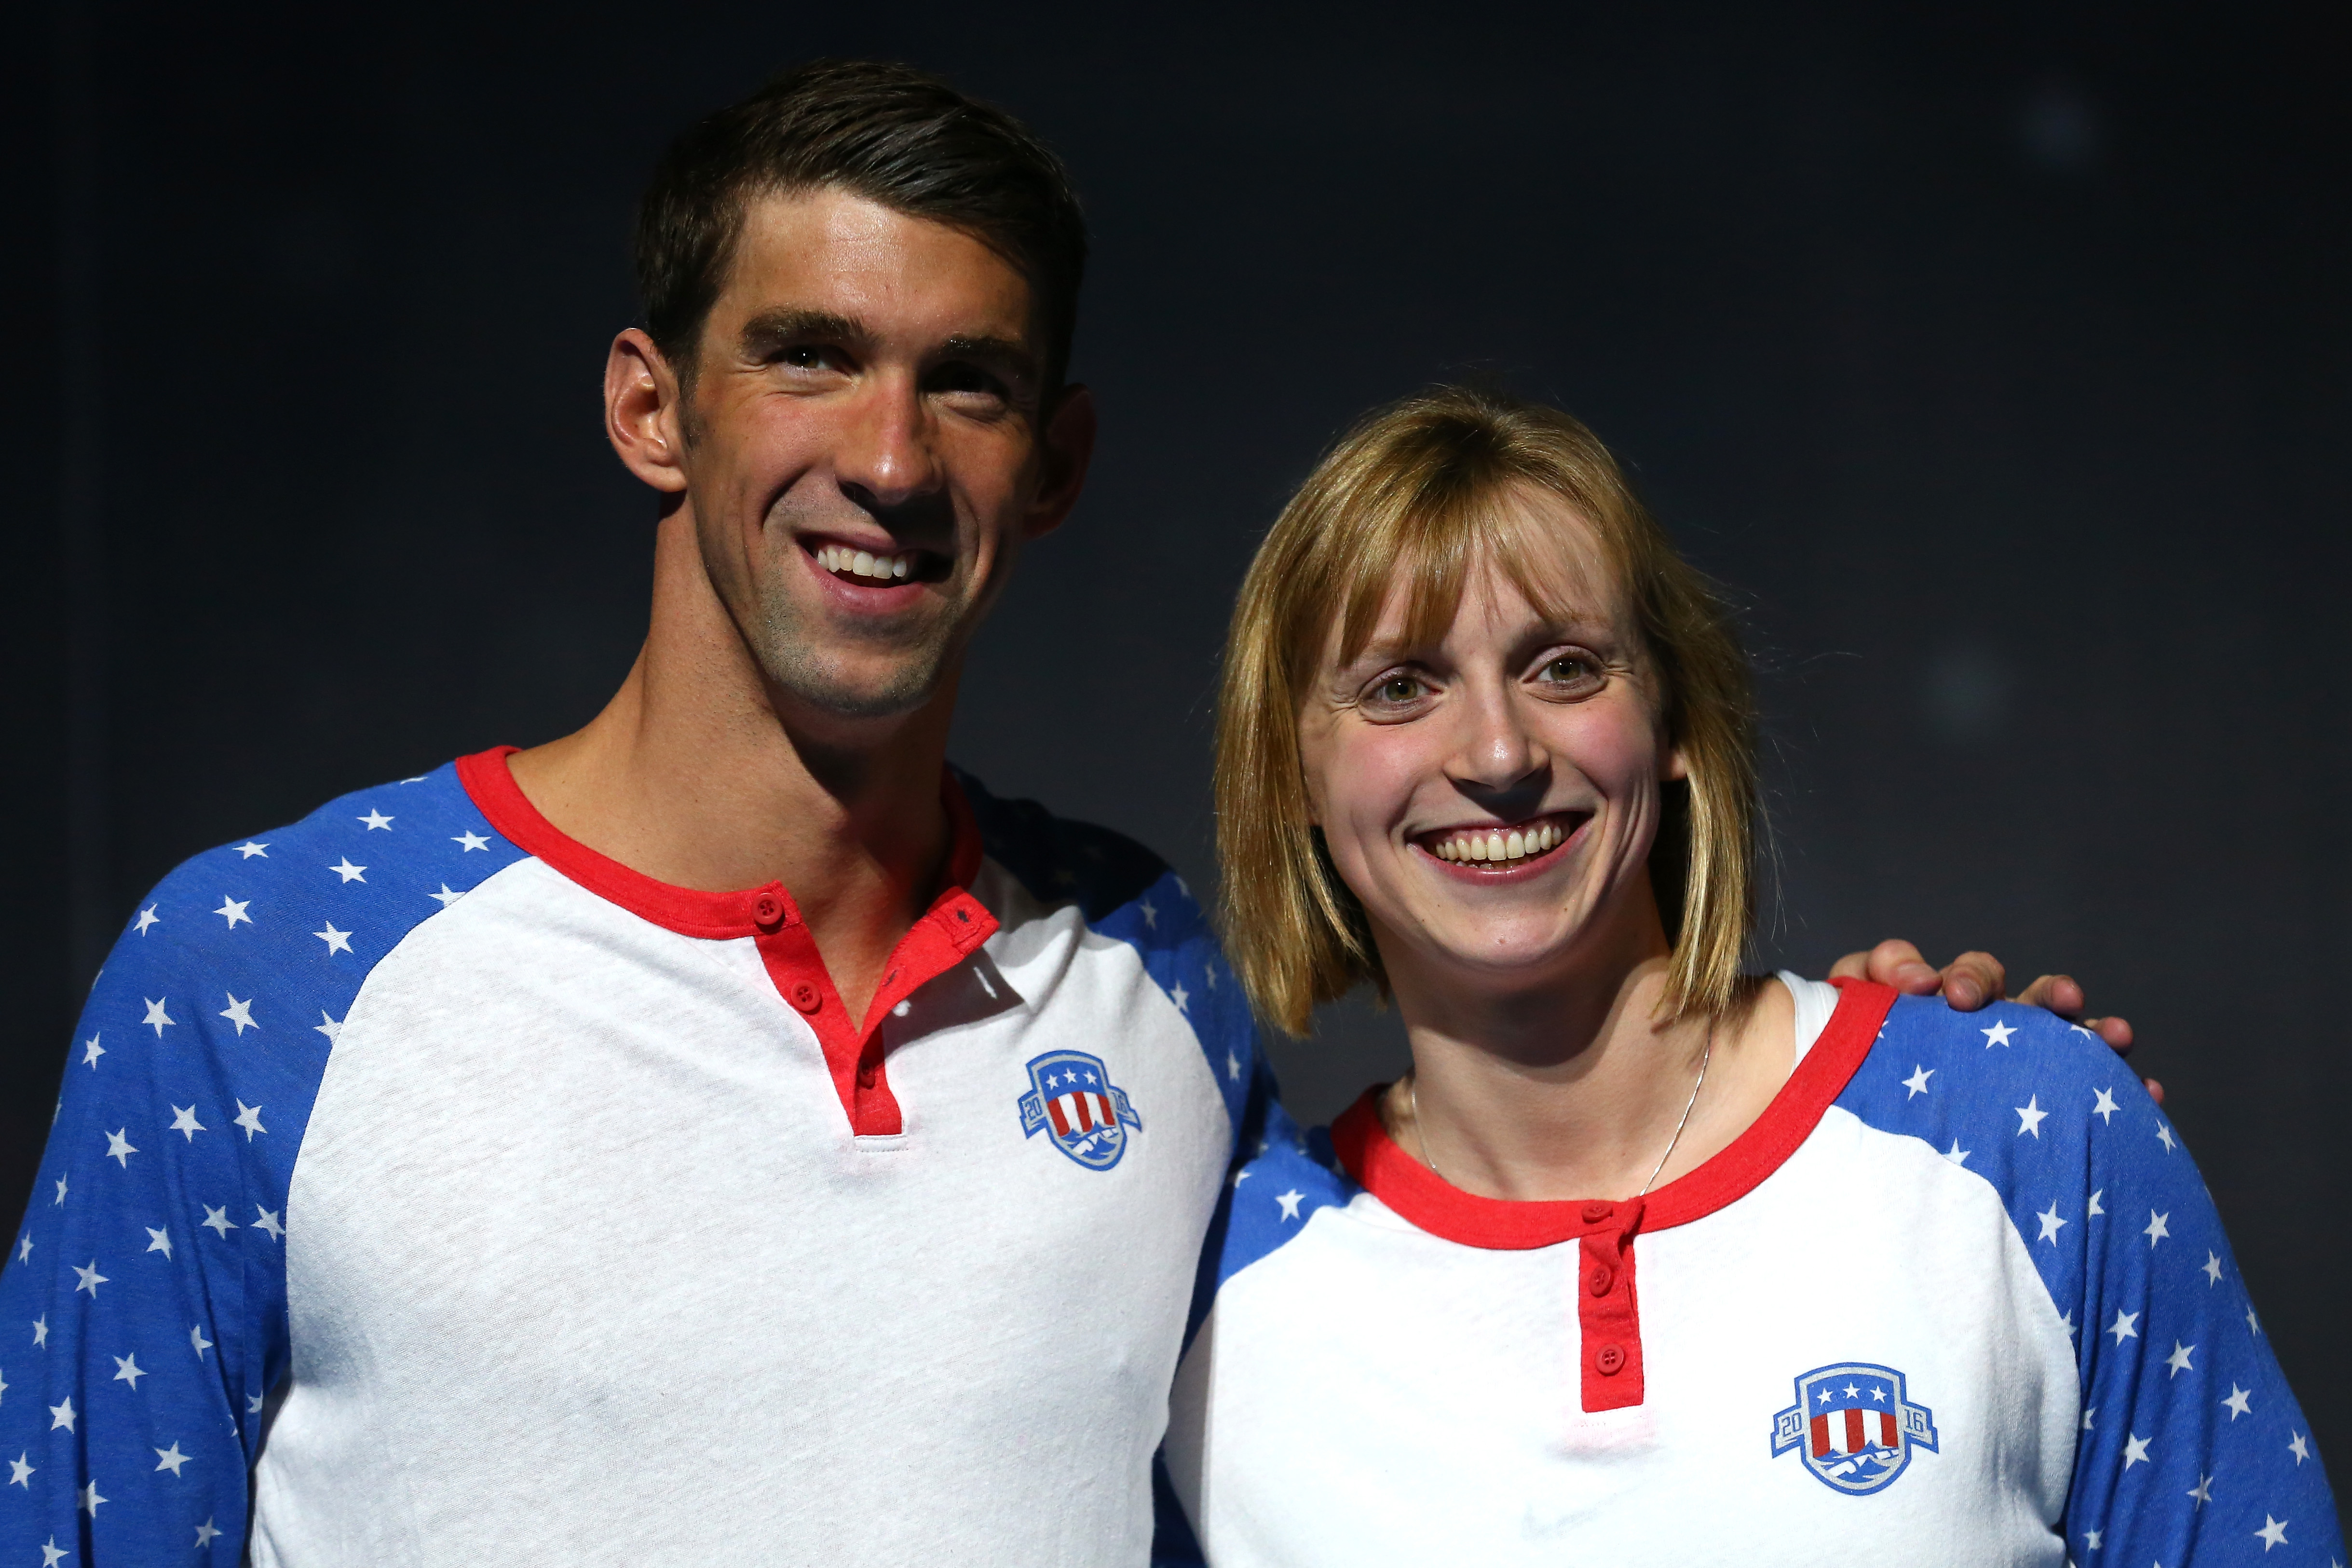 Michael Phelps and Katie Ledecky recreate famous pic and it's THE BEST